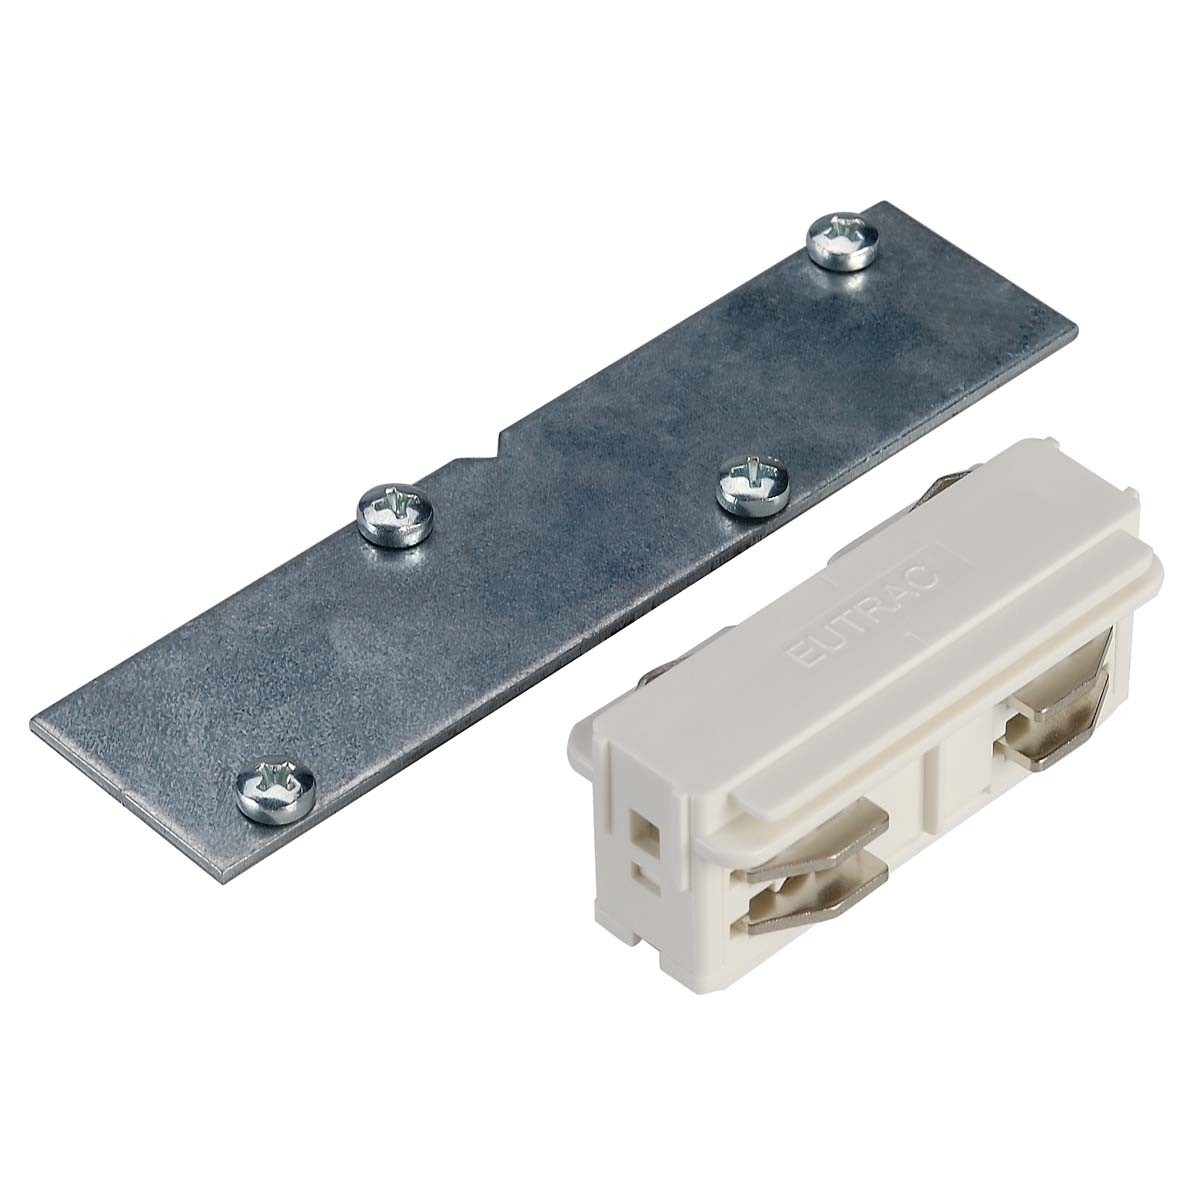 SLV 145571 Coupler White Eutrac 3 Circuit 240V Recessed Track Accessory